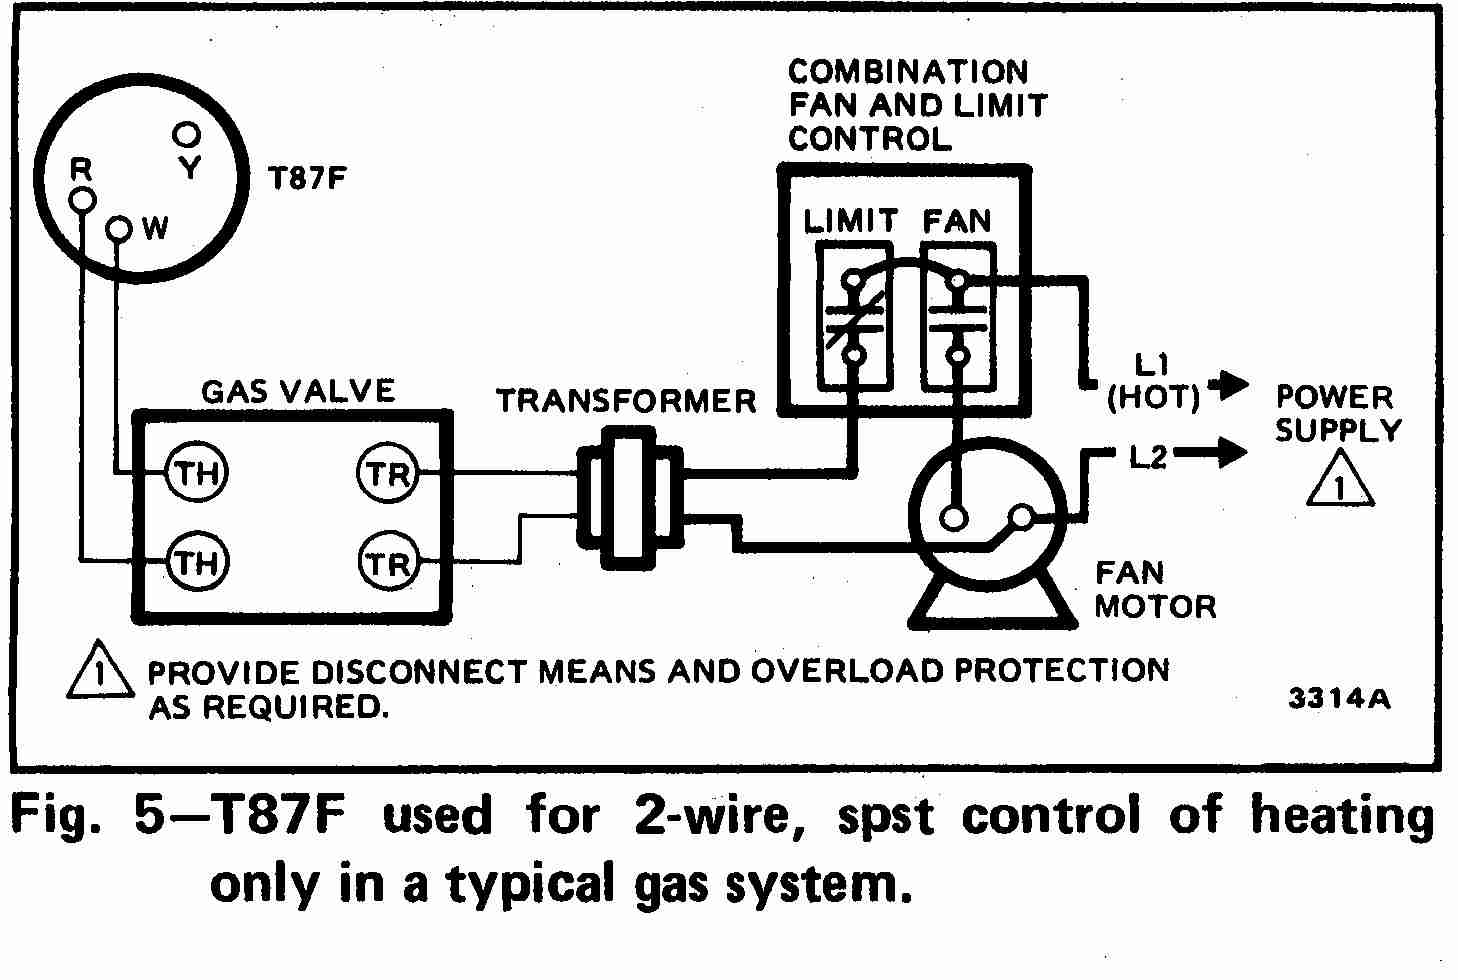 TT_T87F_0002_2Wg_DJF dayton thermostat wiring diagram rv furnace wiring diagrams LuxPro Thermostat Manual at fashall.co